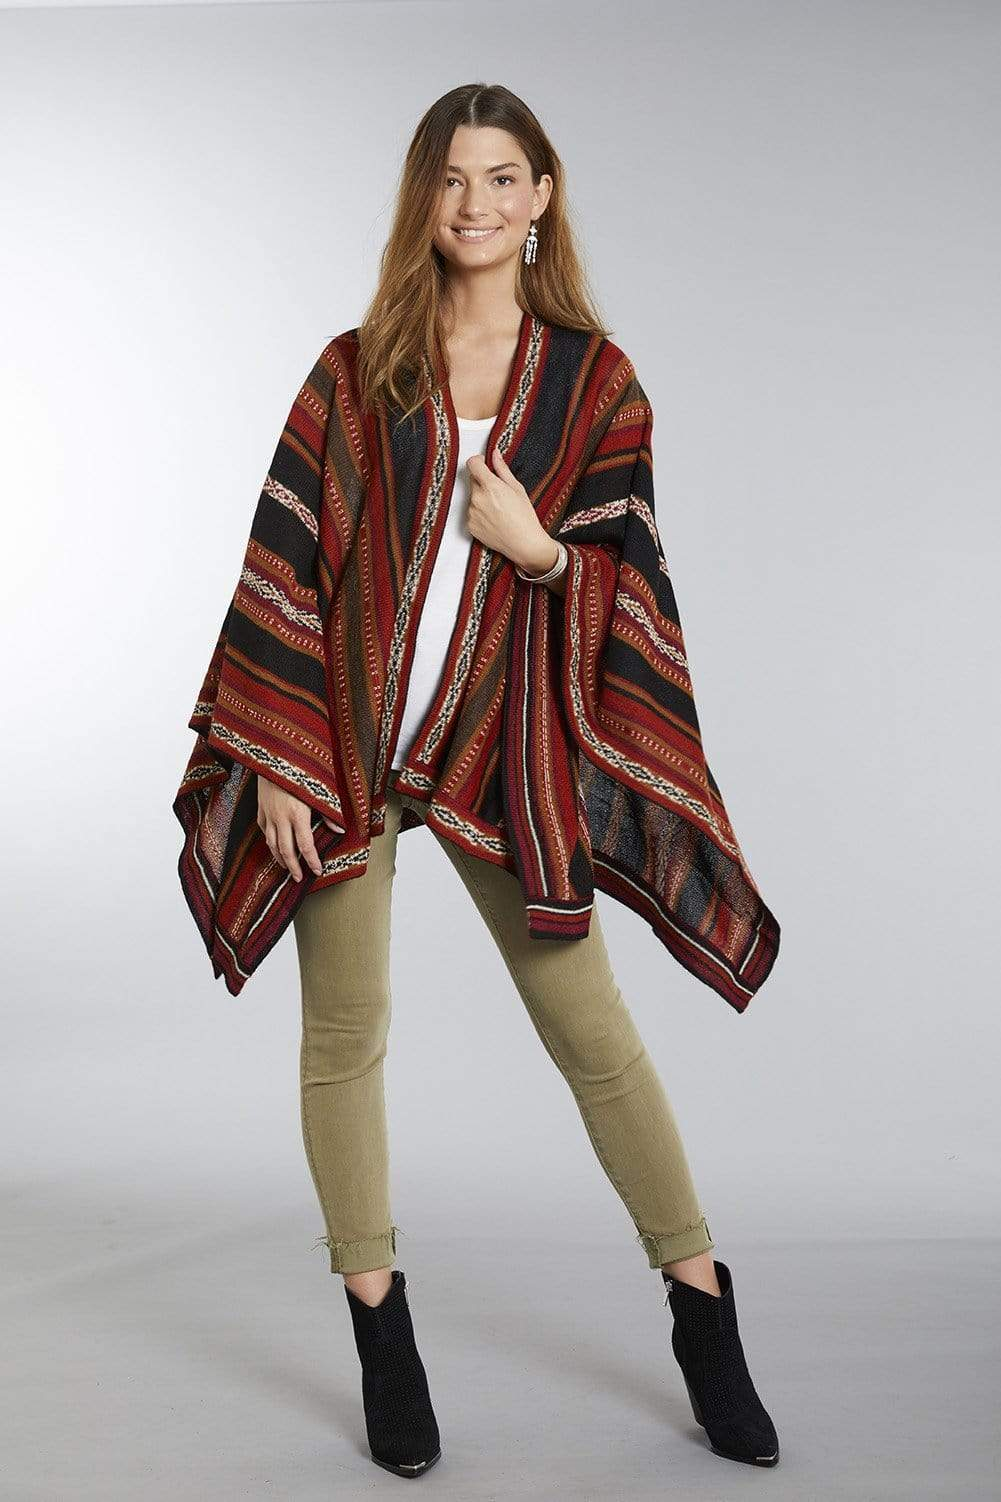 Potosi Lightweight 100% Alpaca Wool Poncho Ruana for Women